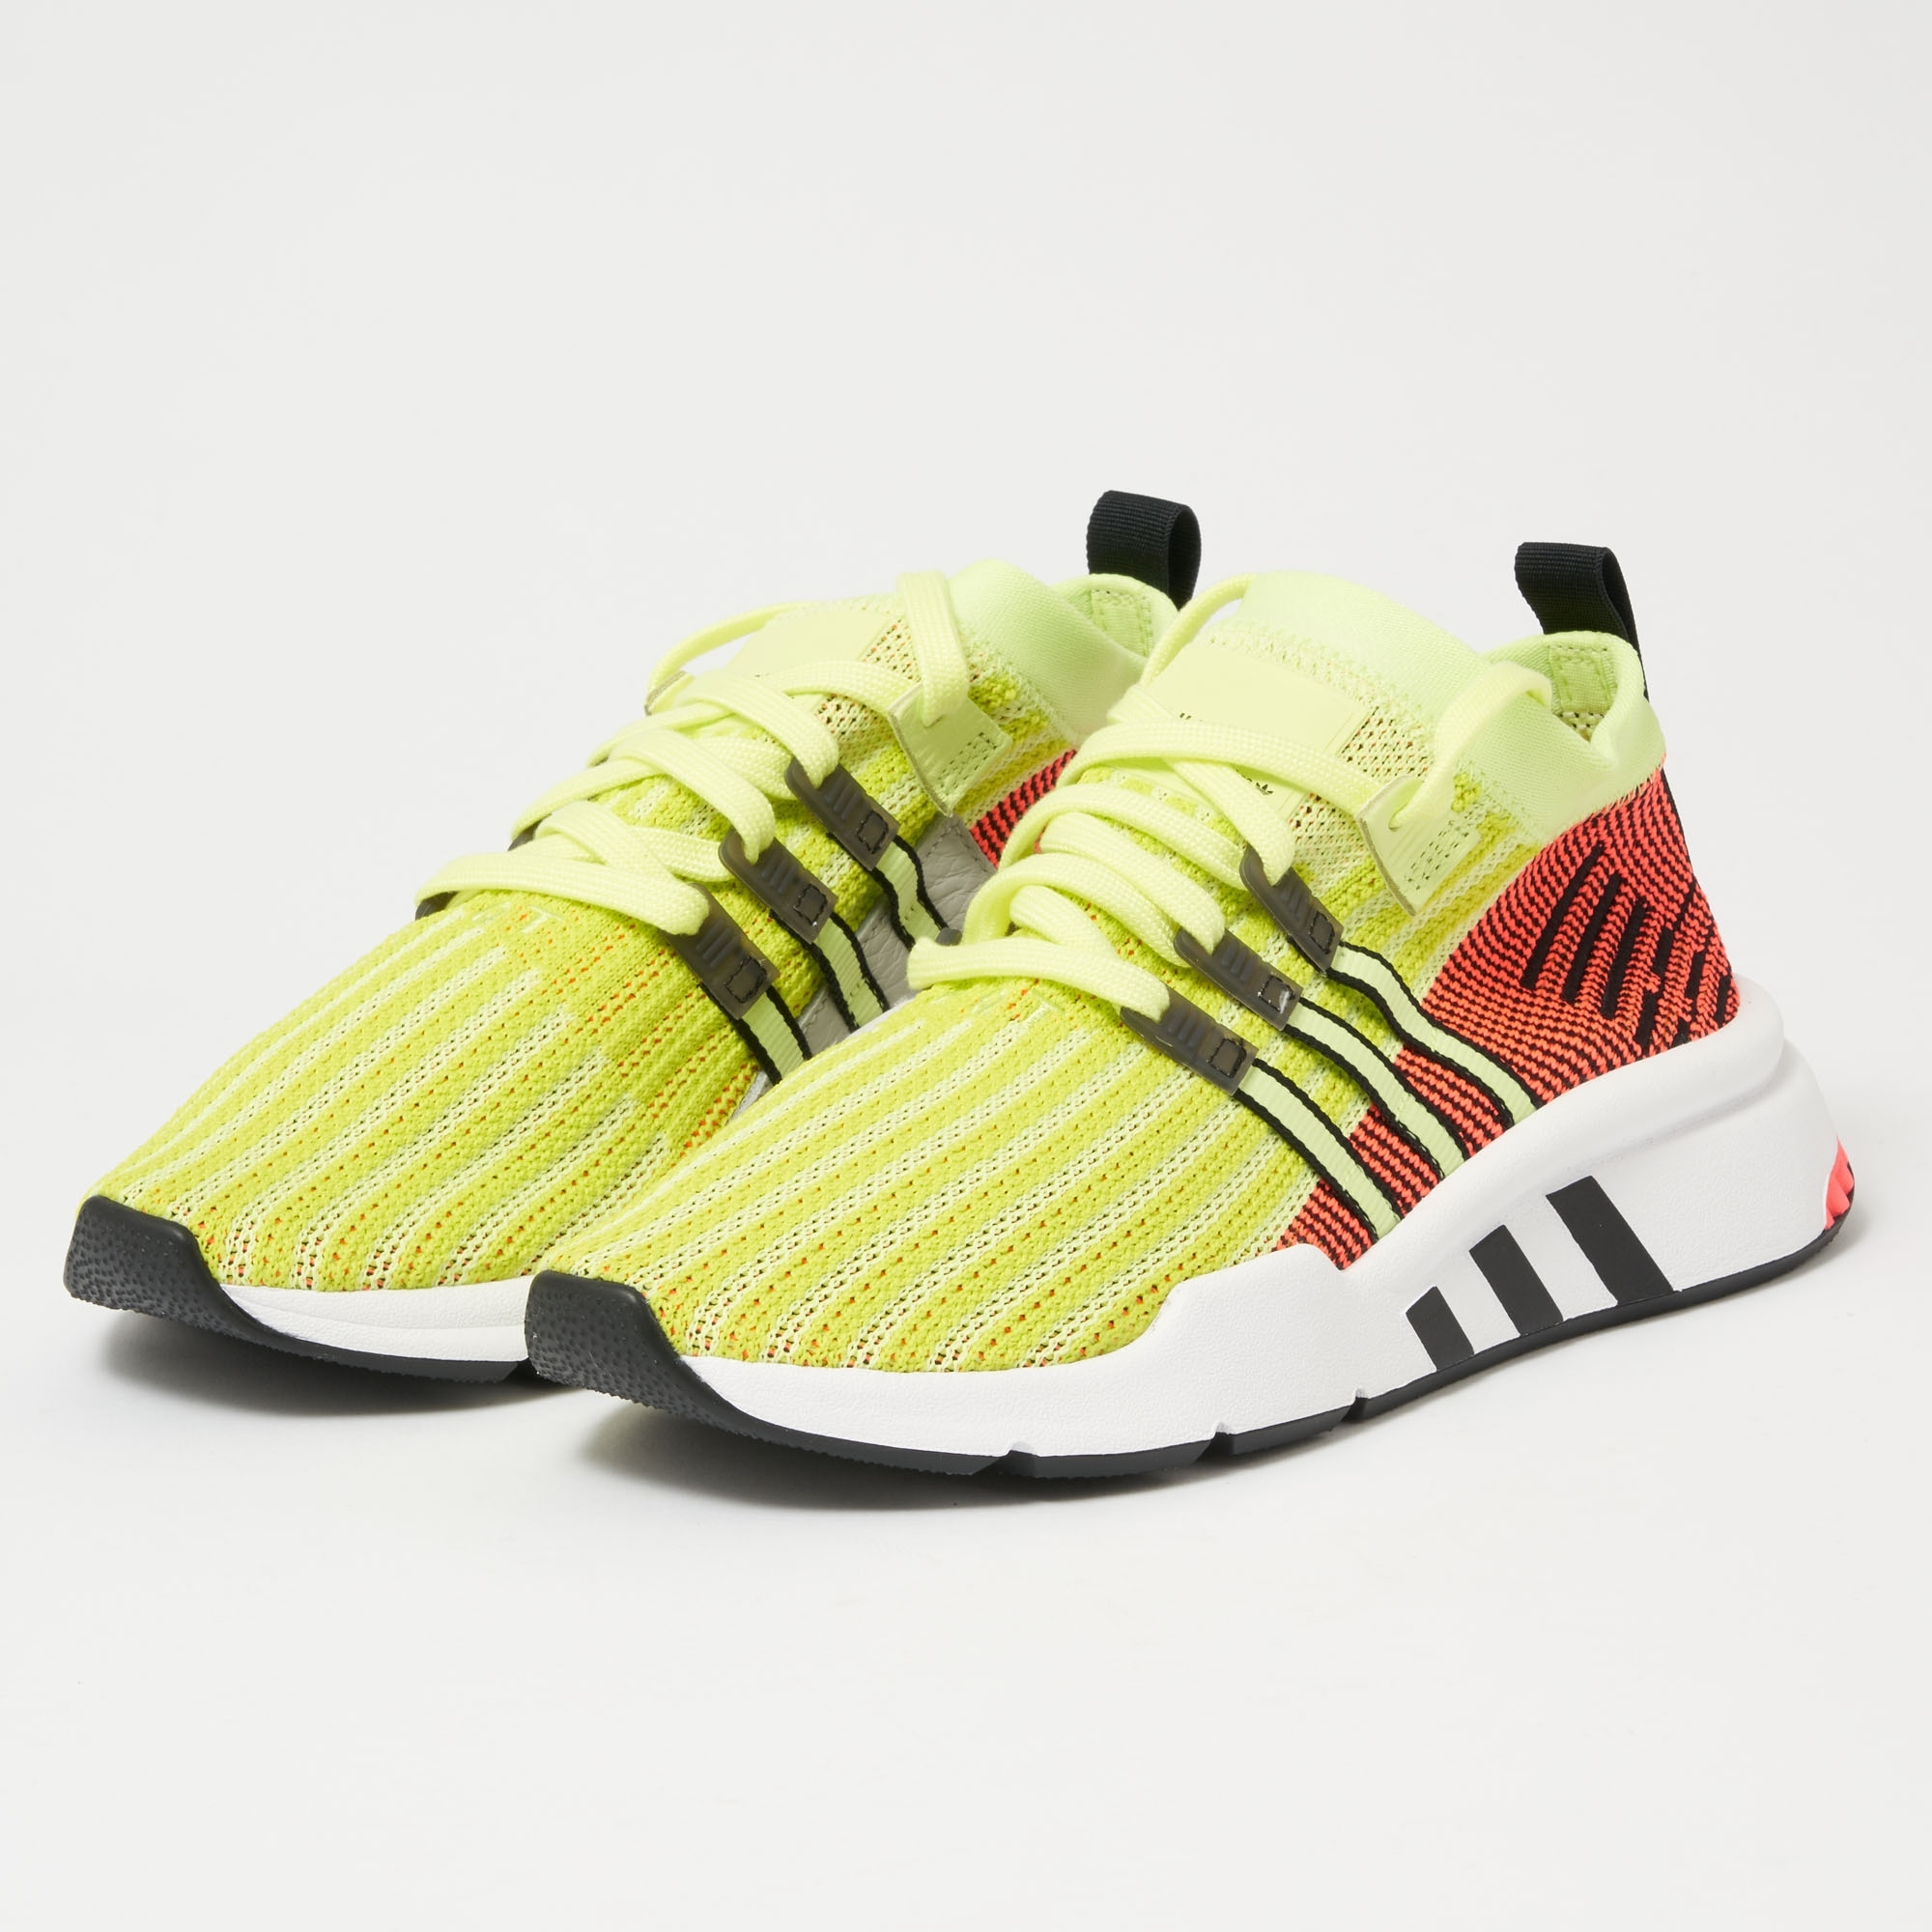 adidas equipment schuhe, adidas Barricade Bermuda